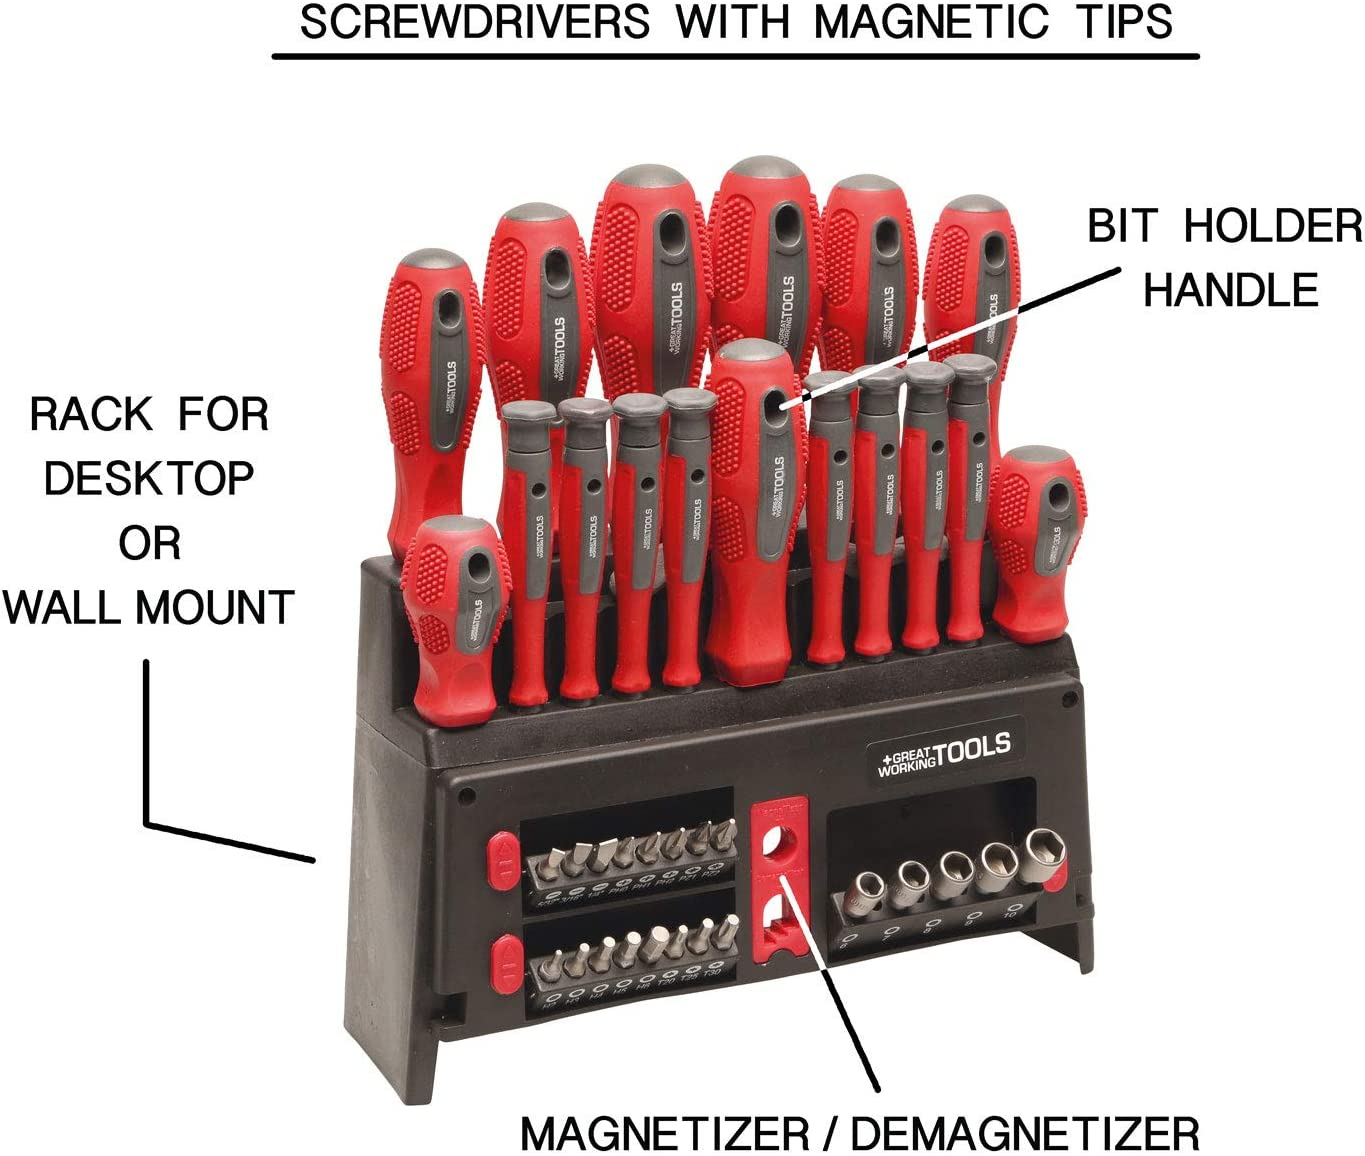 18 Pieces Storage Rack Chrome Vanadium Steel Blades Great Working Tools Multi-Piece Screwdriver Set Magnetic Tips